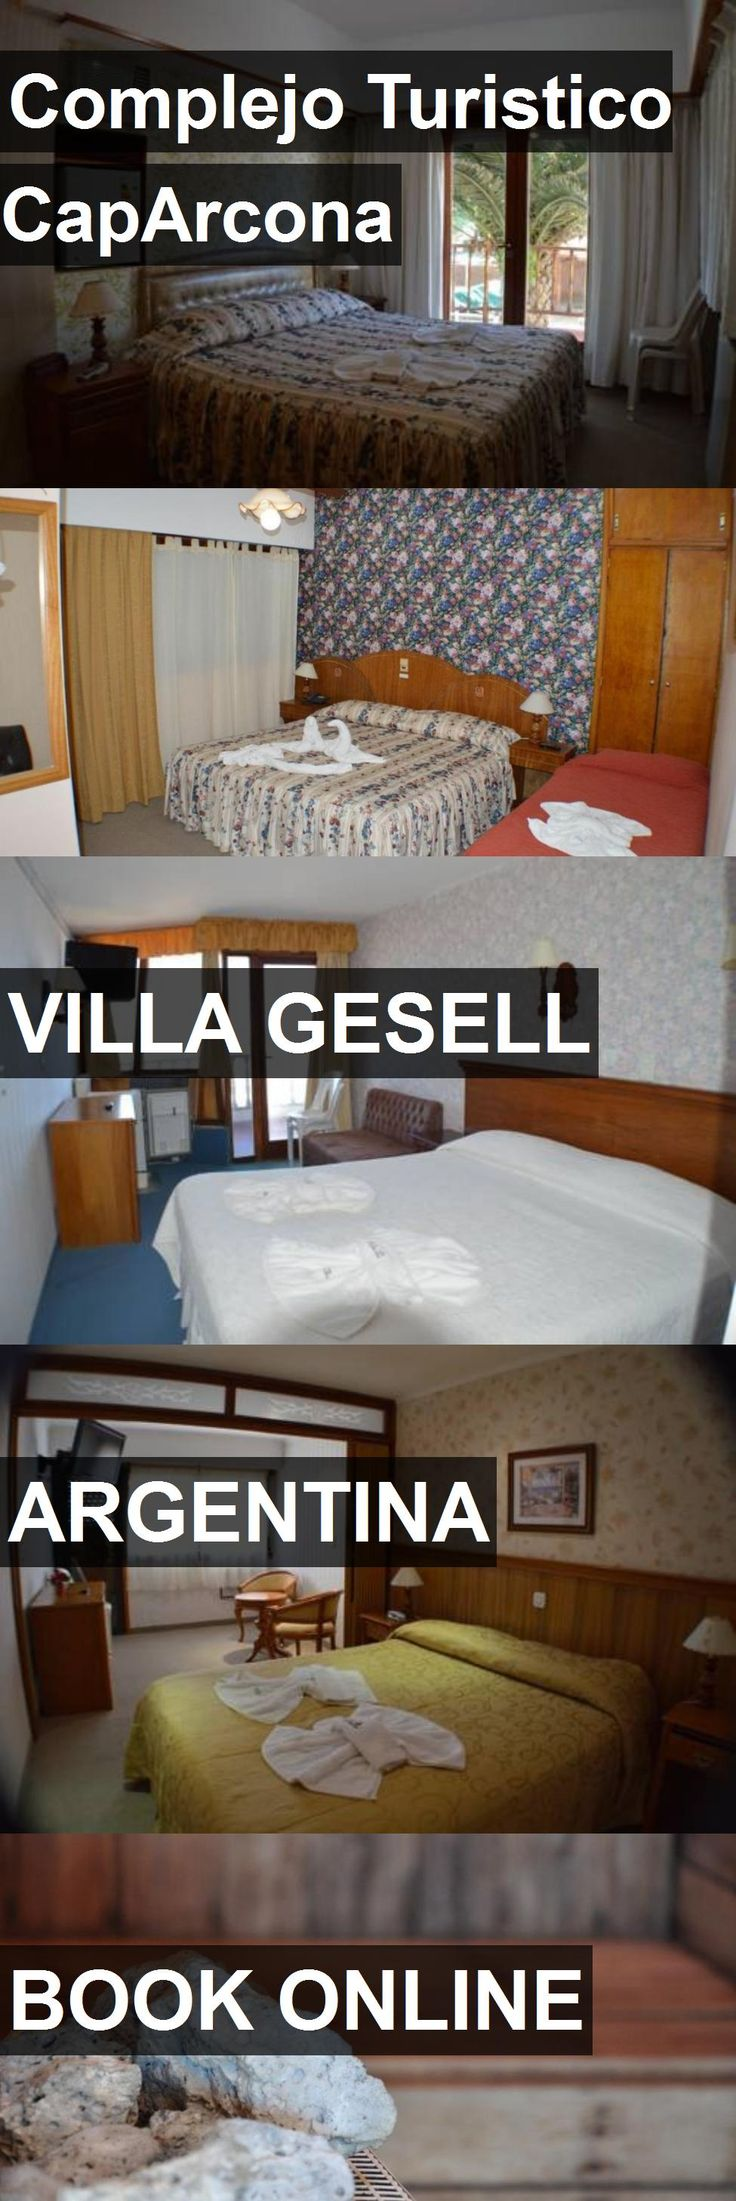 Hotel Complejo Turistico CapArcona in Villa Gesell, Argentina. For more information, photos, reviews and best prices please follow the link. #Argentina #VillaGesell #ComplejoTuristicoCapArcona #hotel #travel #vacation